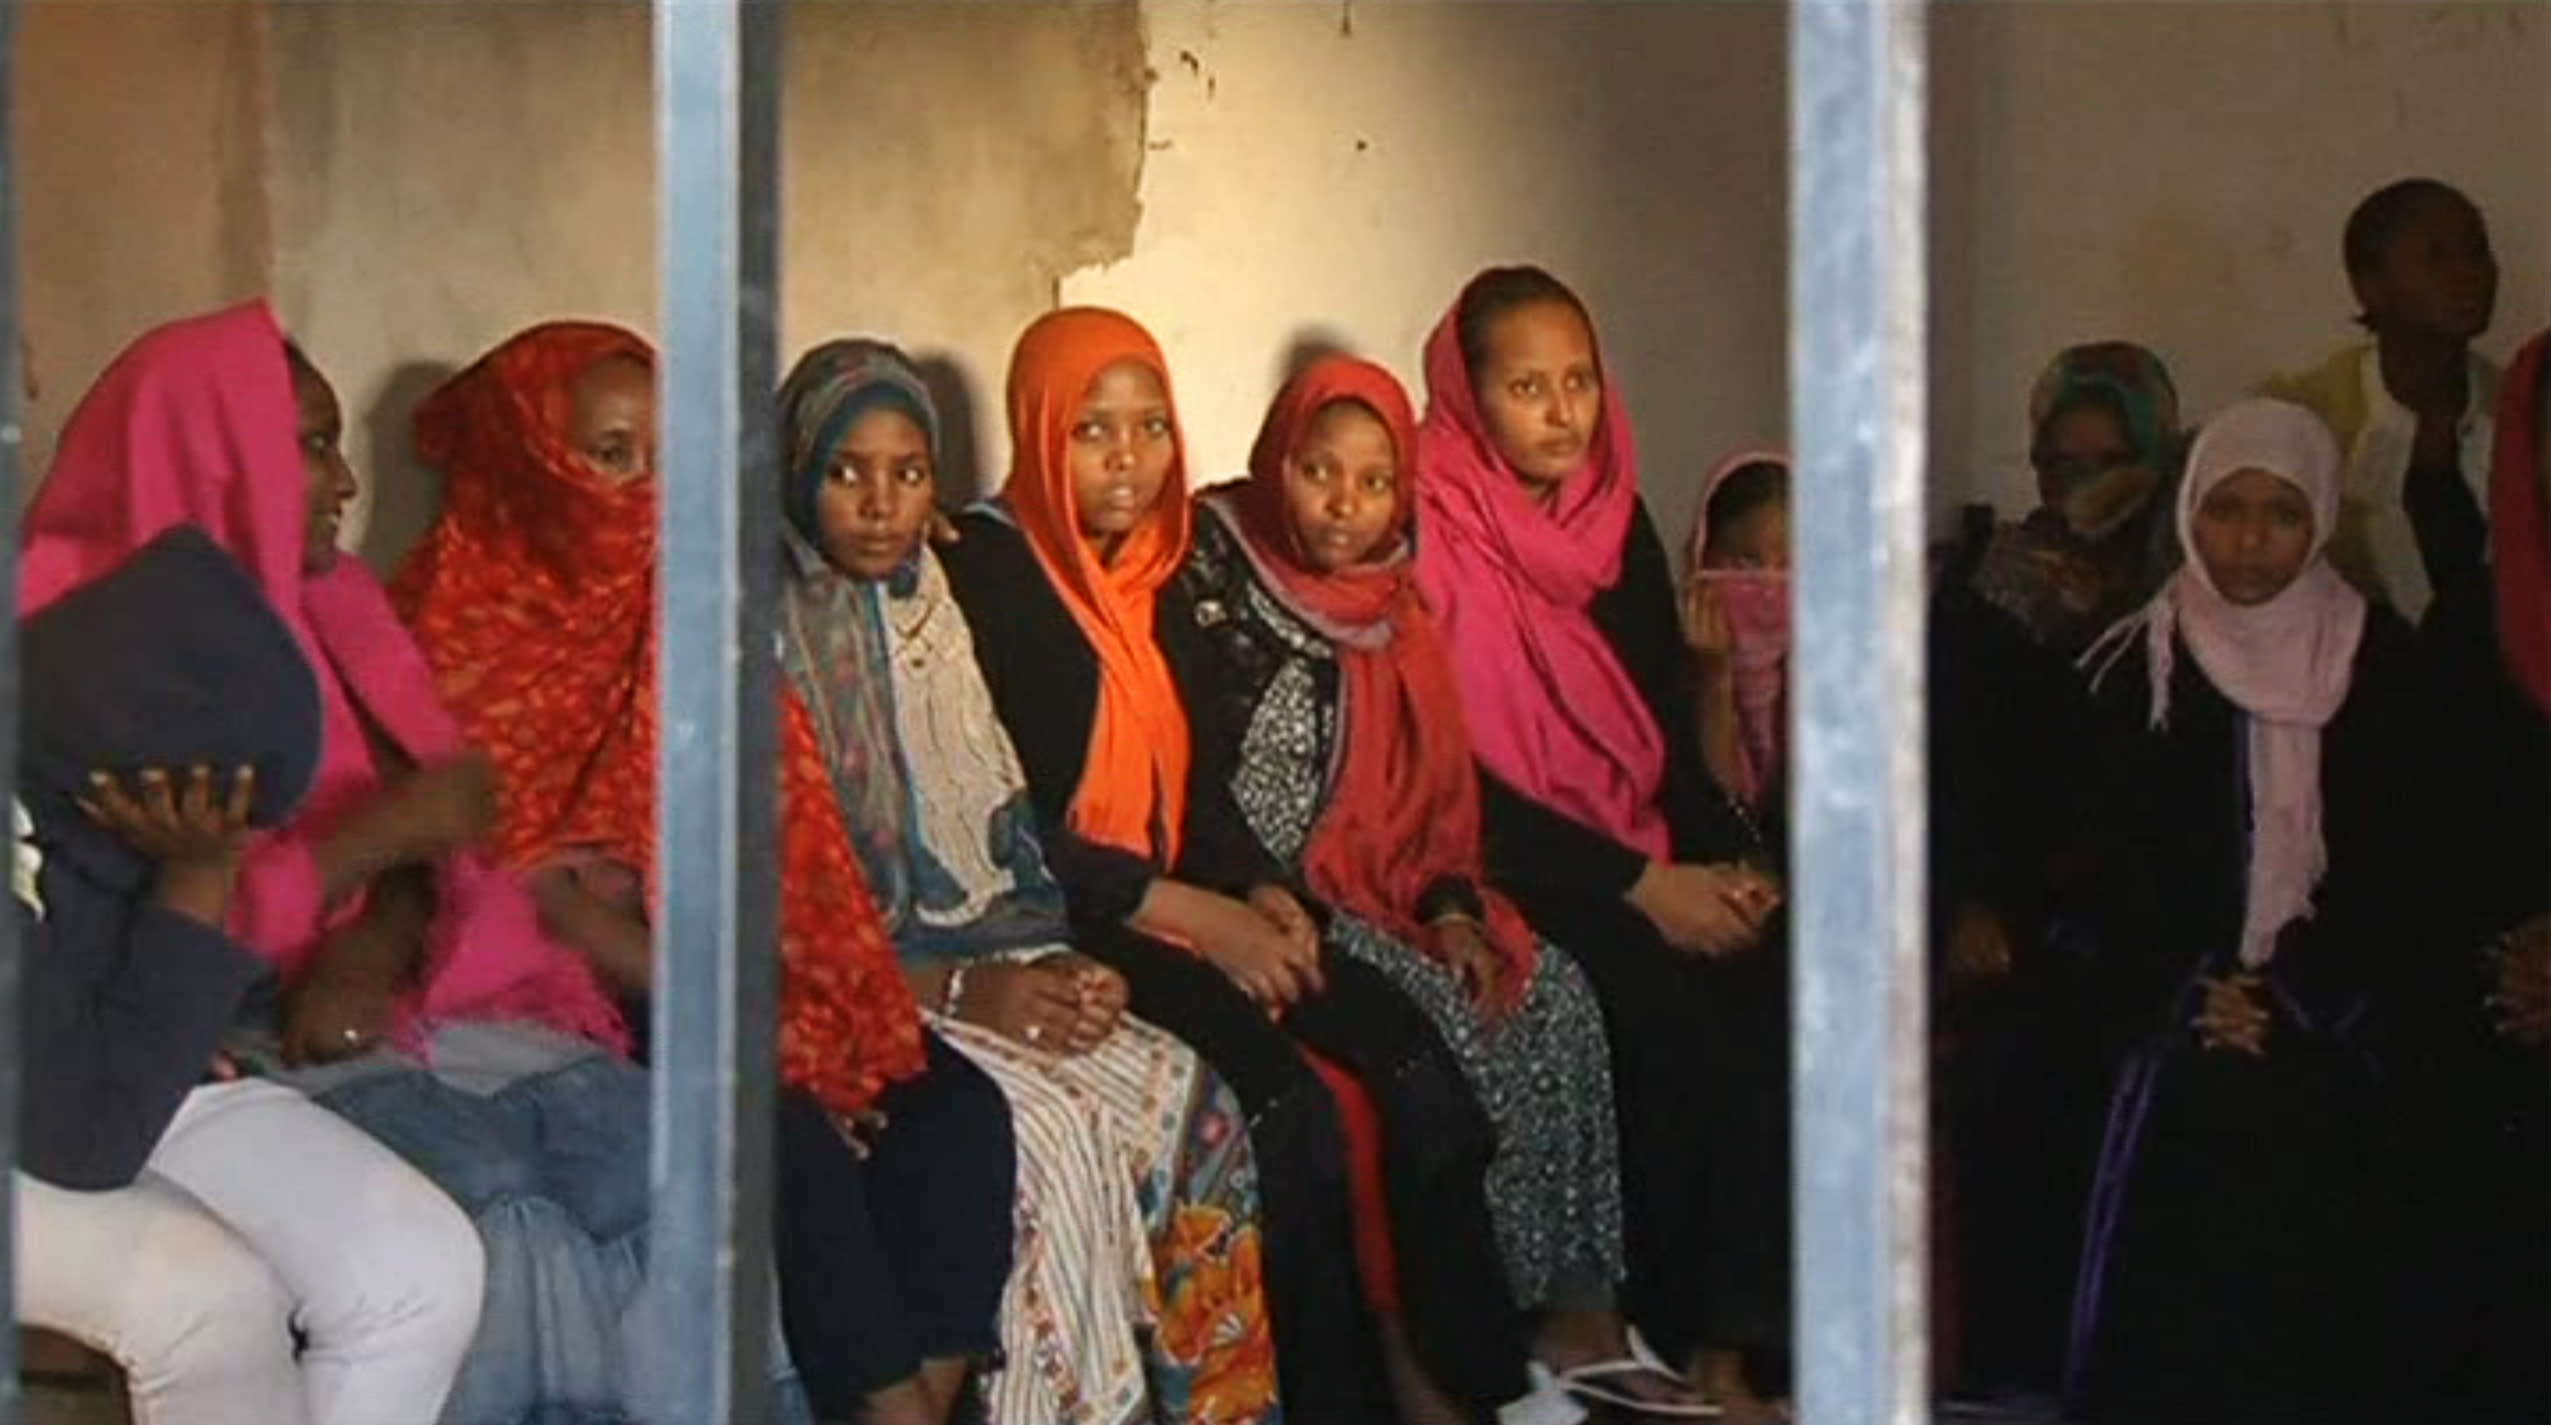 In this image made from Monday, Oct. 14, 2013 video, migrants look through bars at Sabratha migrant detention center for women in Sabratha, Libya. Libya's chaos in the two years following the overthrow of dictator Moammar Gadhafi has turned the country into a prime springboard for tens of thousands of migrants, mainly from Africa, trying to reach Europe in dangerous sea voyages. (AP Photo/AP Video)